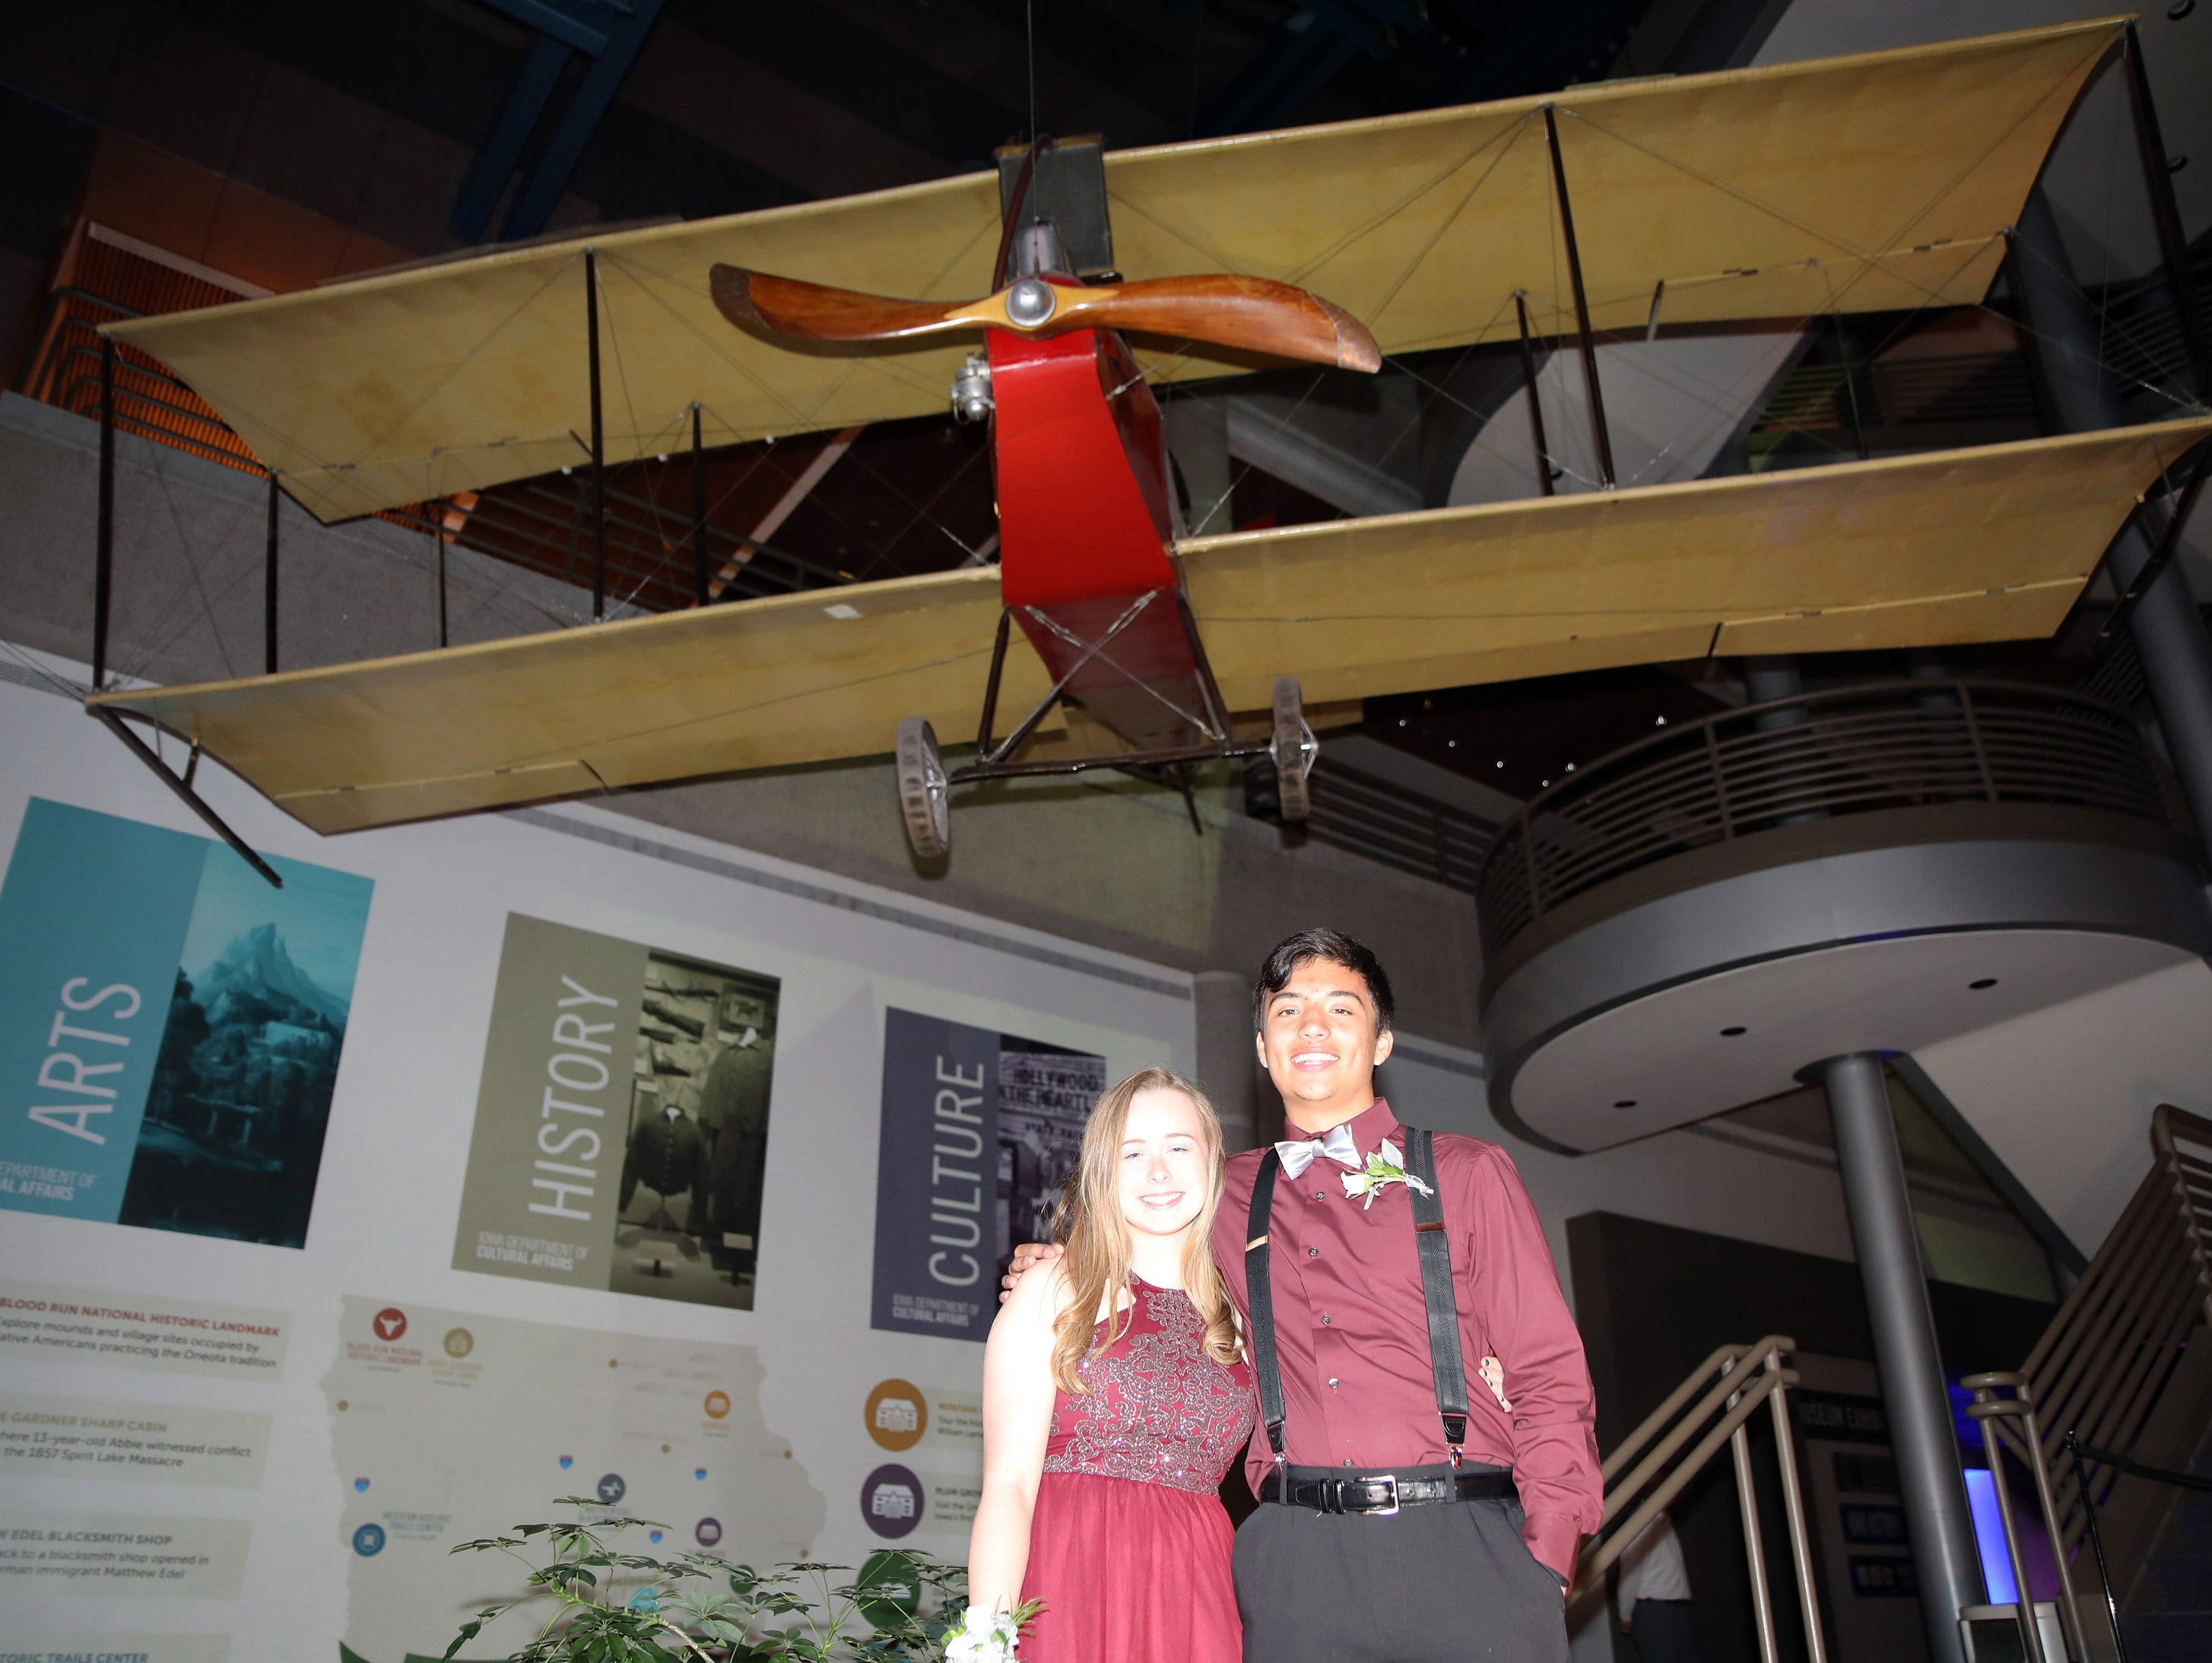 Sophomore Madison Fett and senior Alexander Correa stand below the Oscar Solbrig Benoist Tractor Biplane during the circus-themed Urbandale High School Junior/Senior Prom Spectacular at the State Historical Building in Des Moines on Saturday, April 11, 2019.  The post-prom event is held at school right after the dance from 11 p.m. to 4:30 a.m. with food, prizes, a hypnotist, inflatables, and casino games.